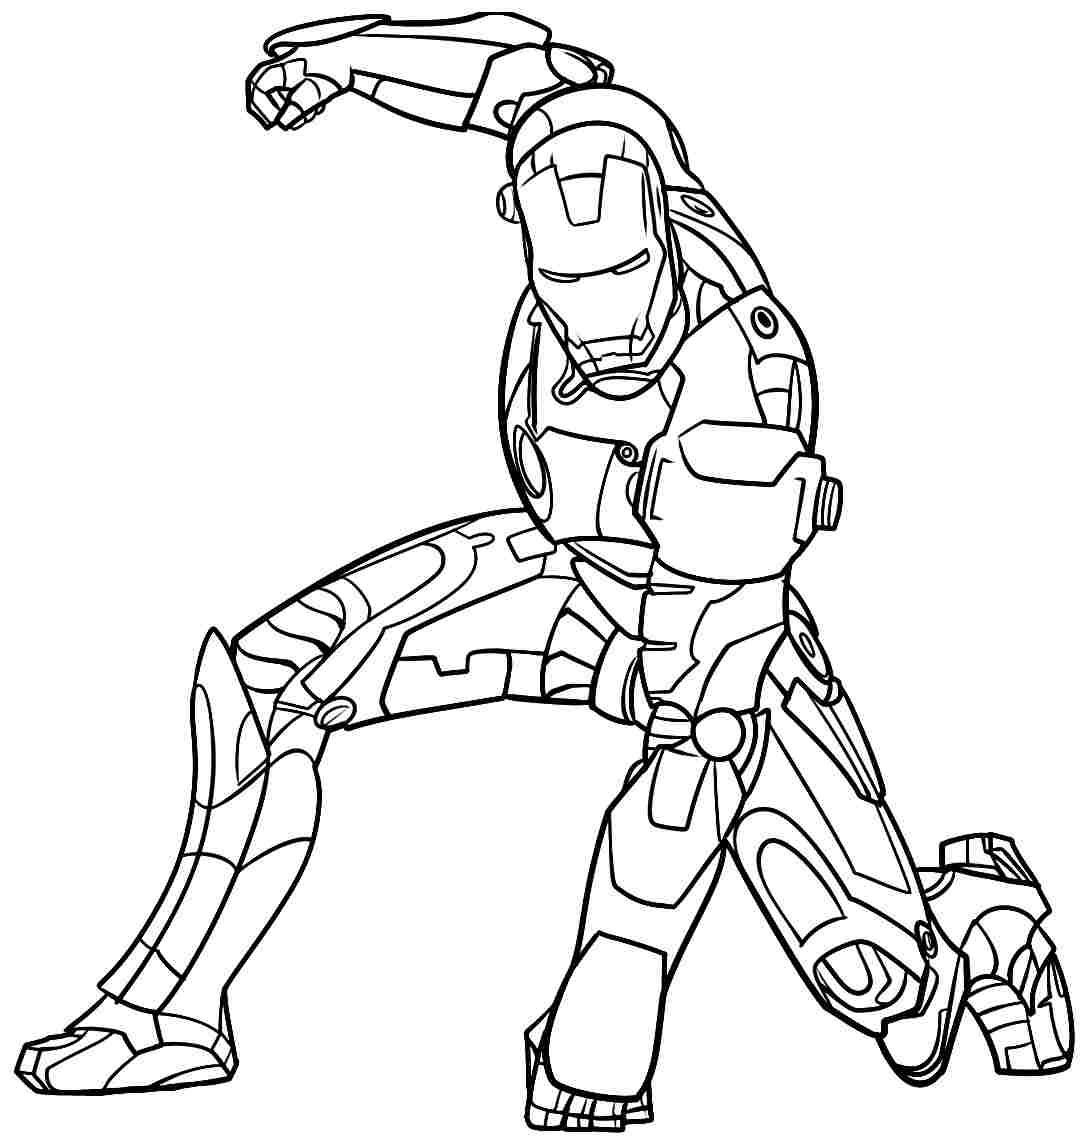 iron man free coloring pages free printable ironman coloring pages coloring home pages man free iron coloring